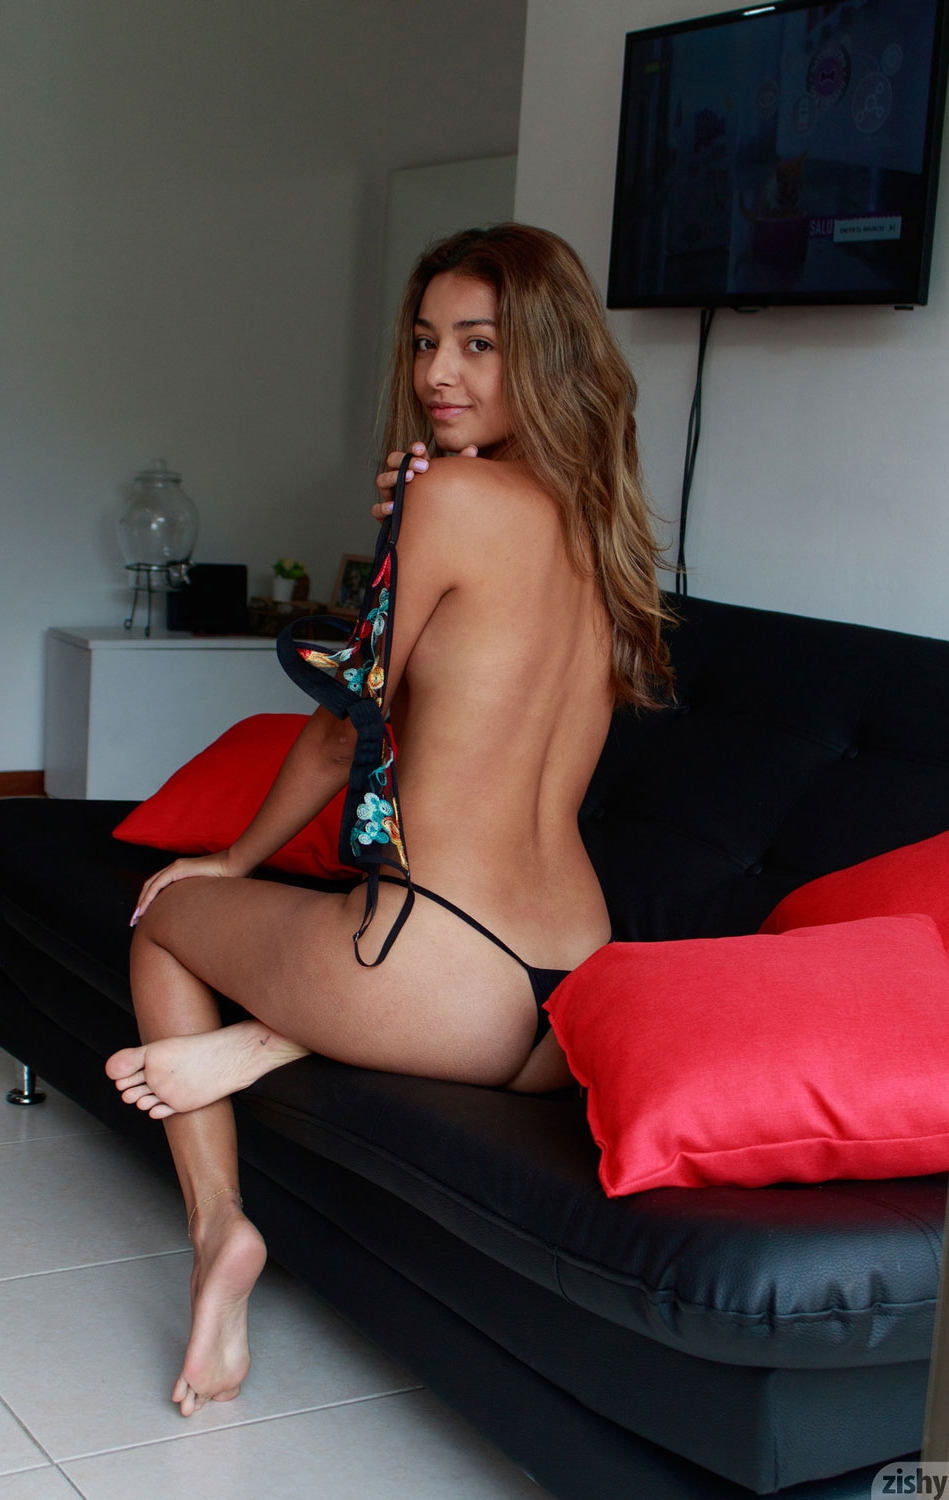 Camilita Johanna showing her ass and stripping